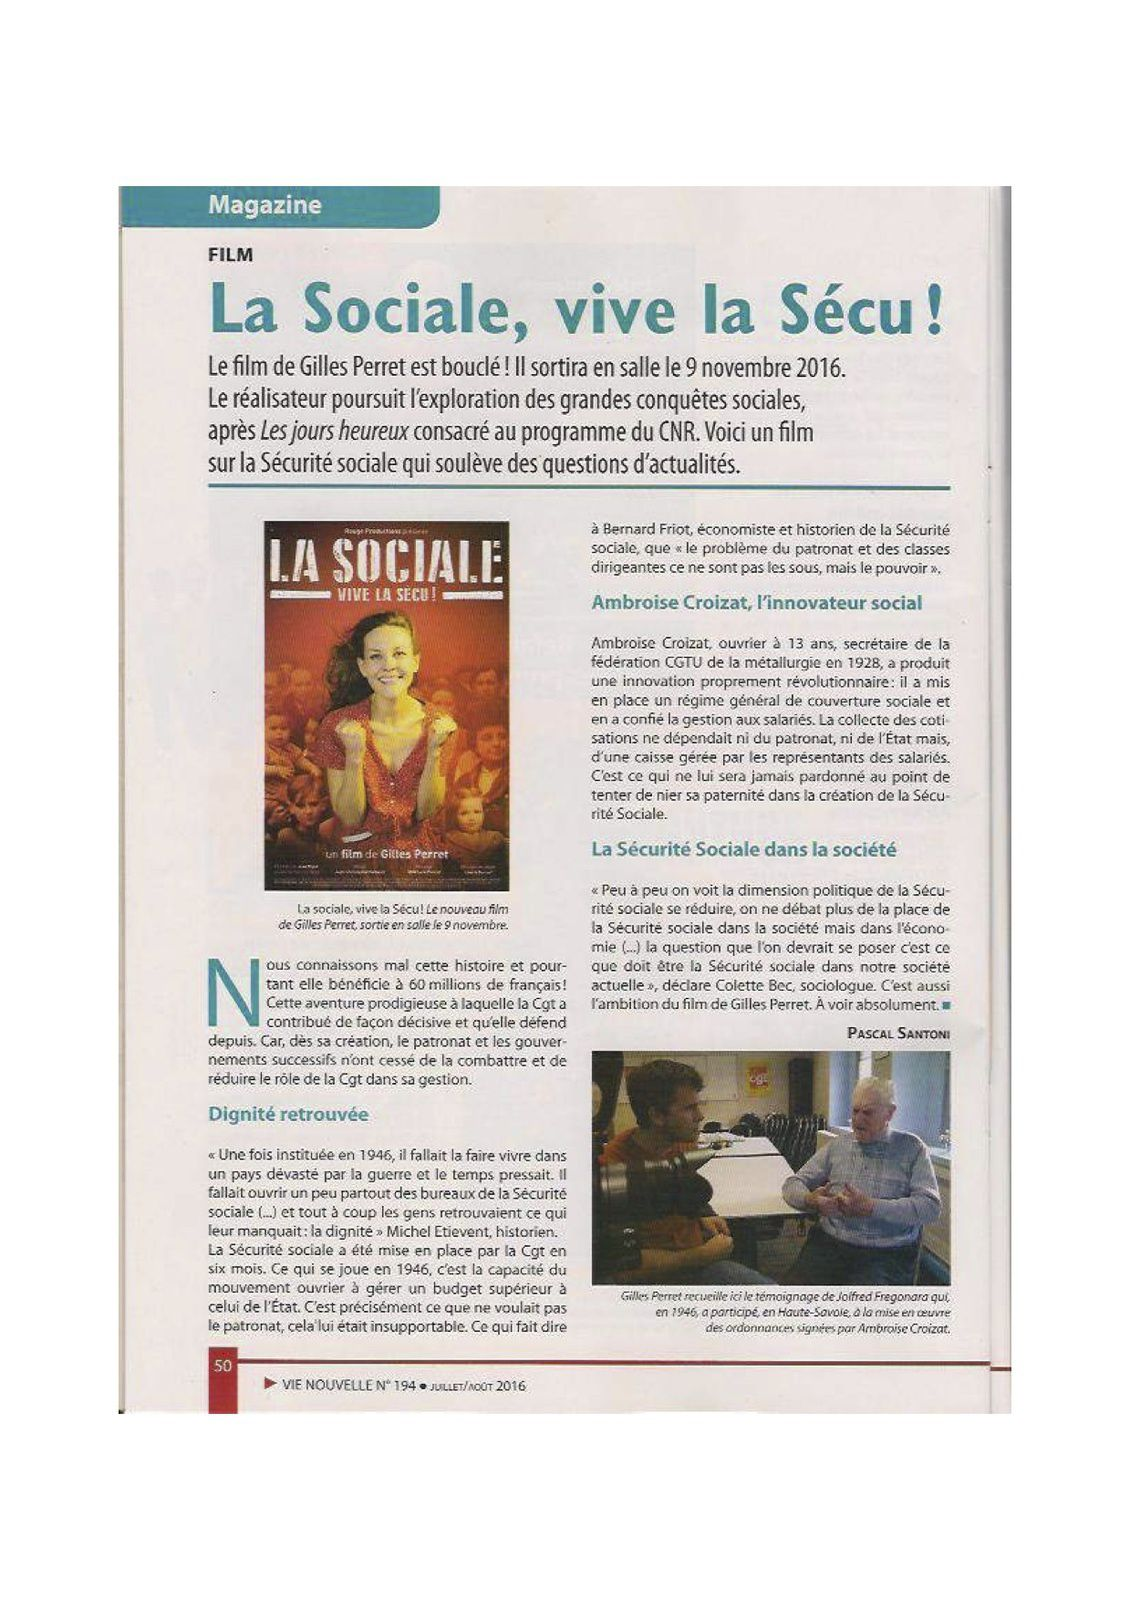 FILM DOCUMENTAIRE LA SOCIALE